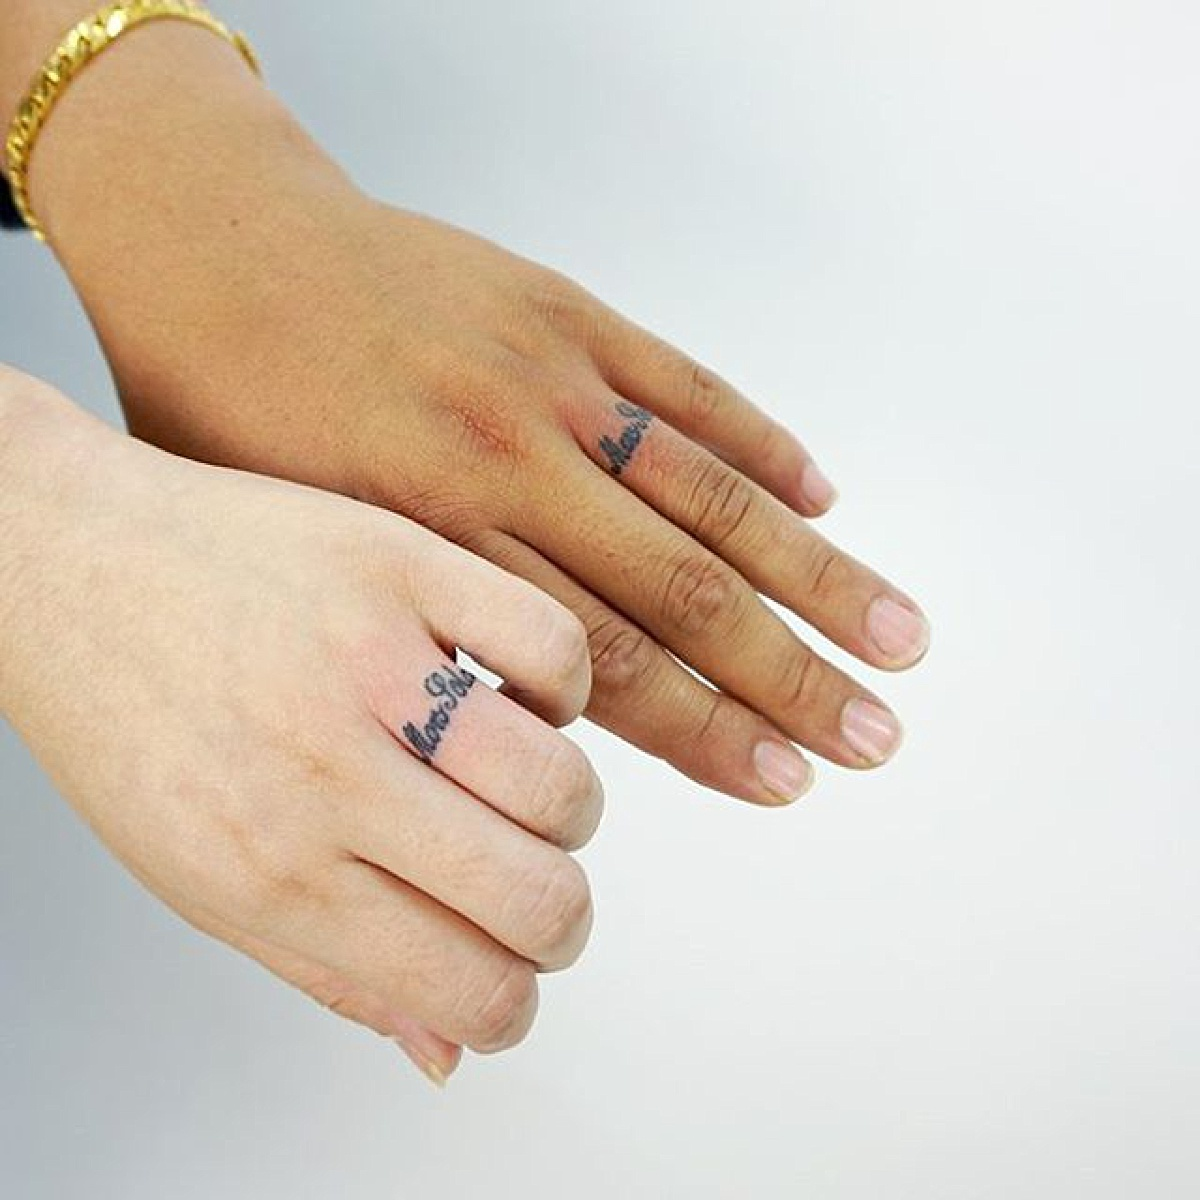 25 Wedding Ring Tattoo Ideas That Don T Suck A Practical Wedding